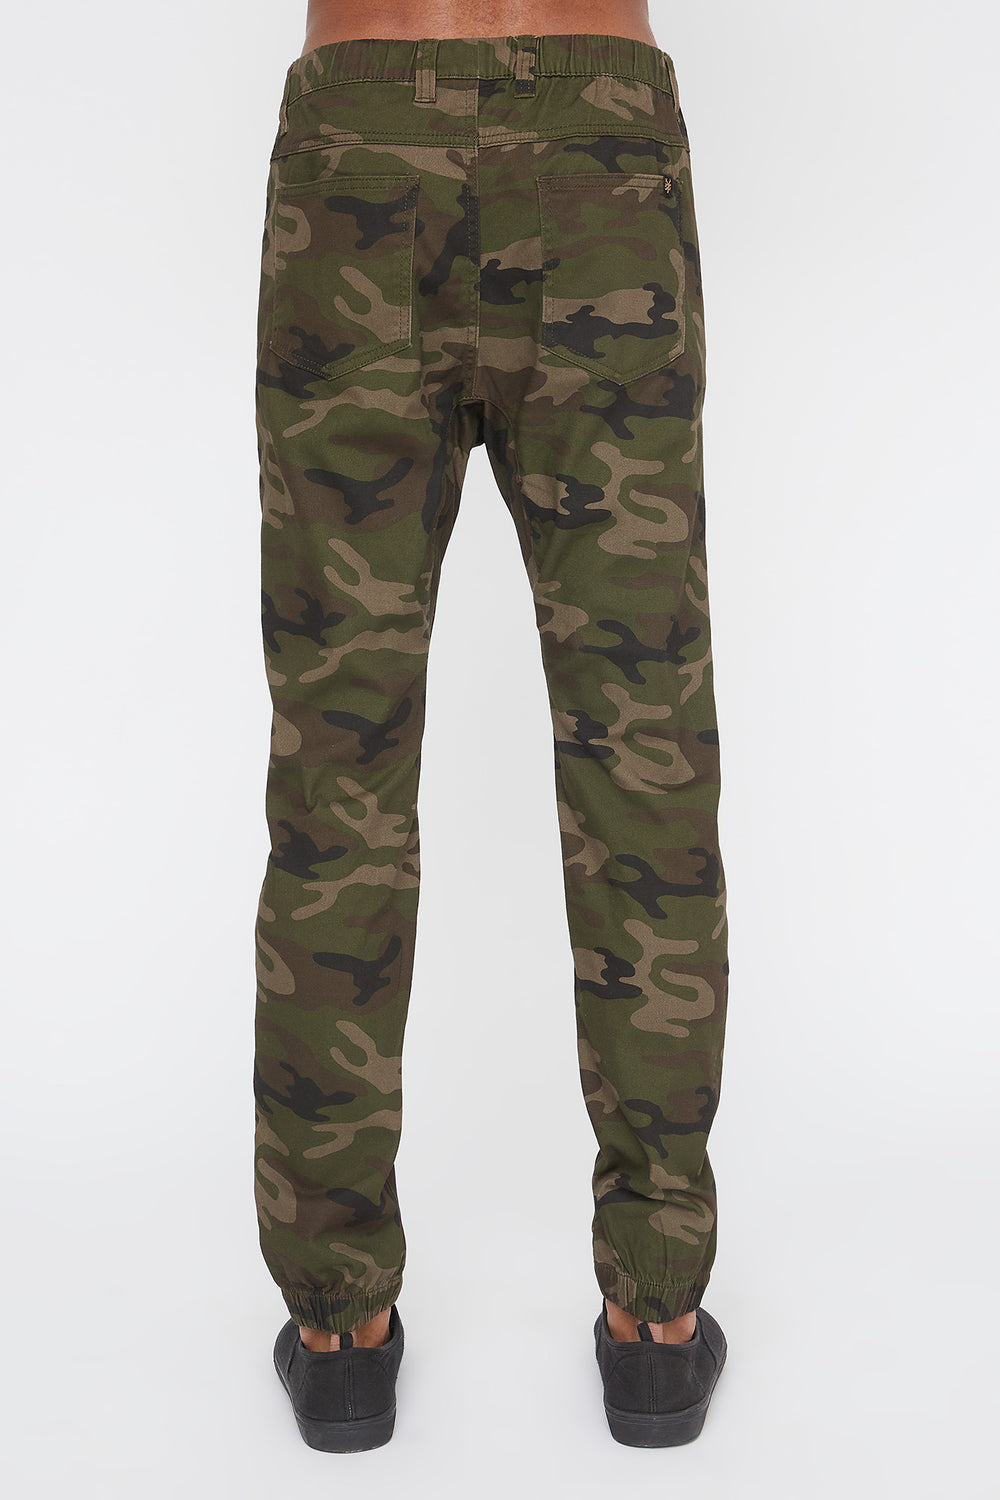 Zoo York Mens Camo 5-Pocket Jogger Camouflage